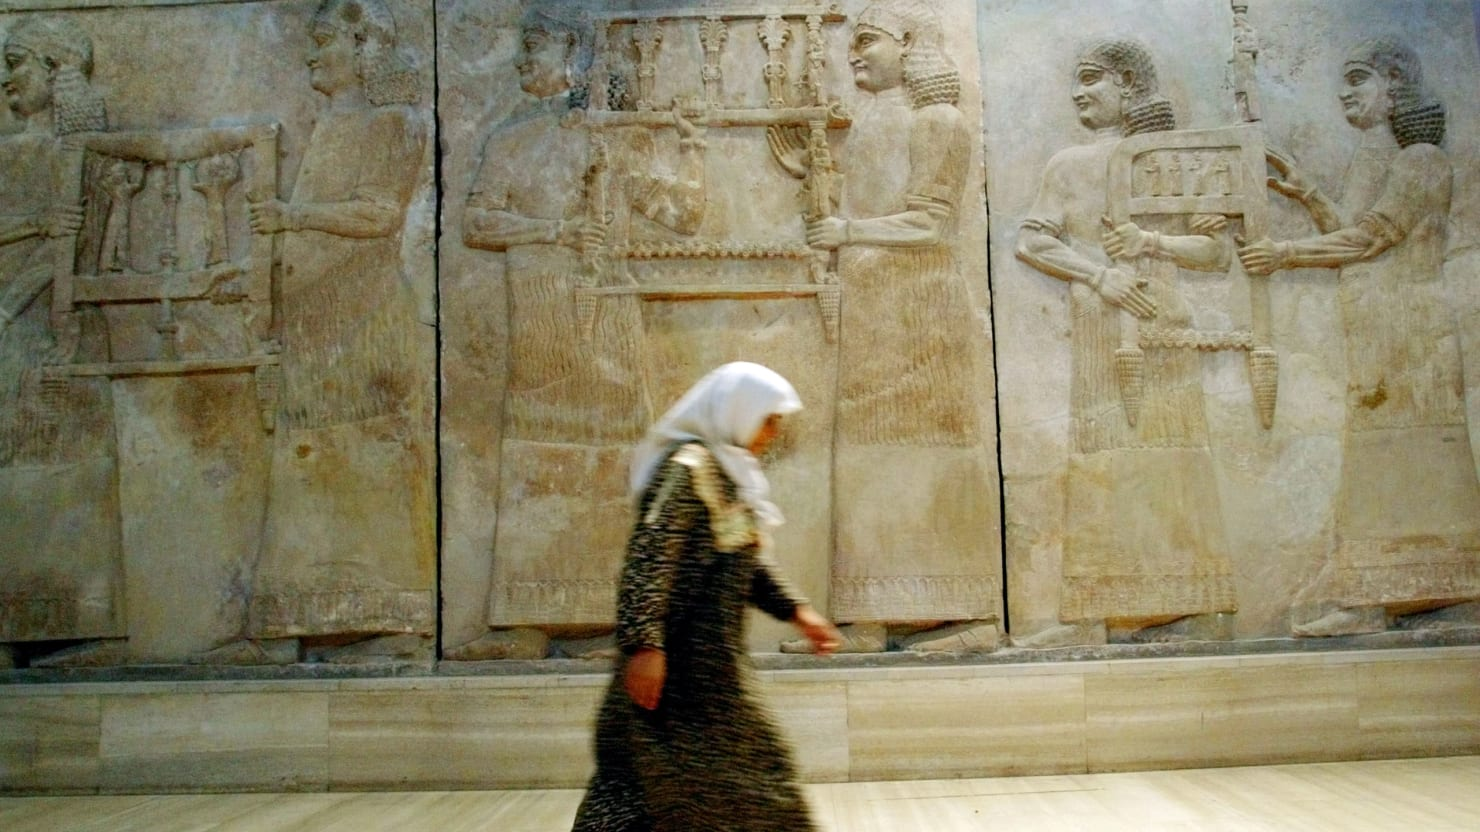 ISIS Is About to Destroy Biblical History in Iraq